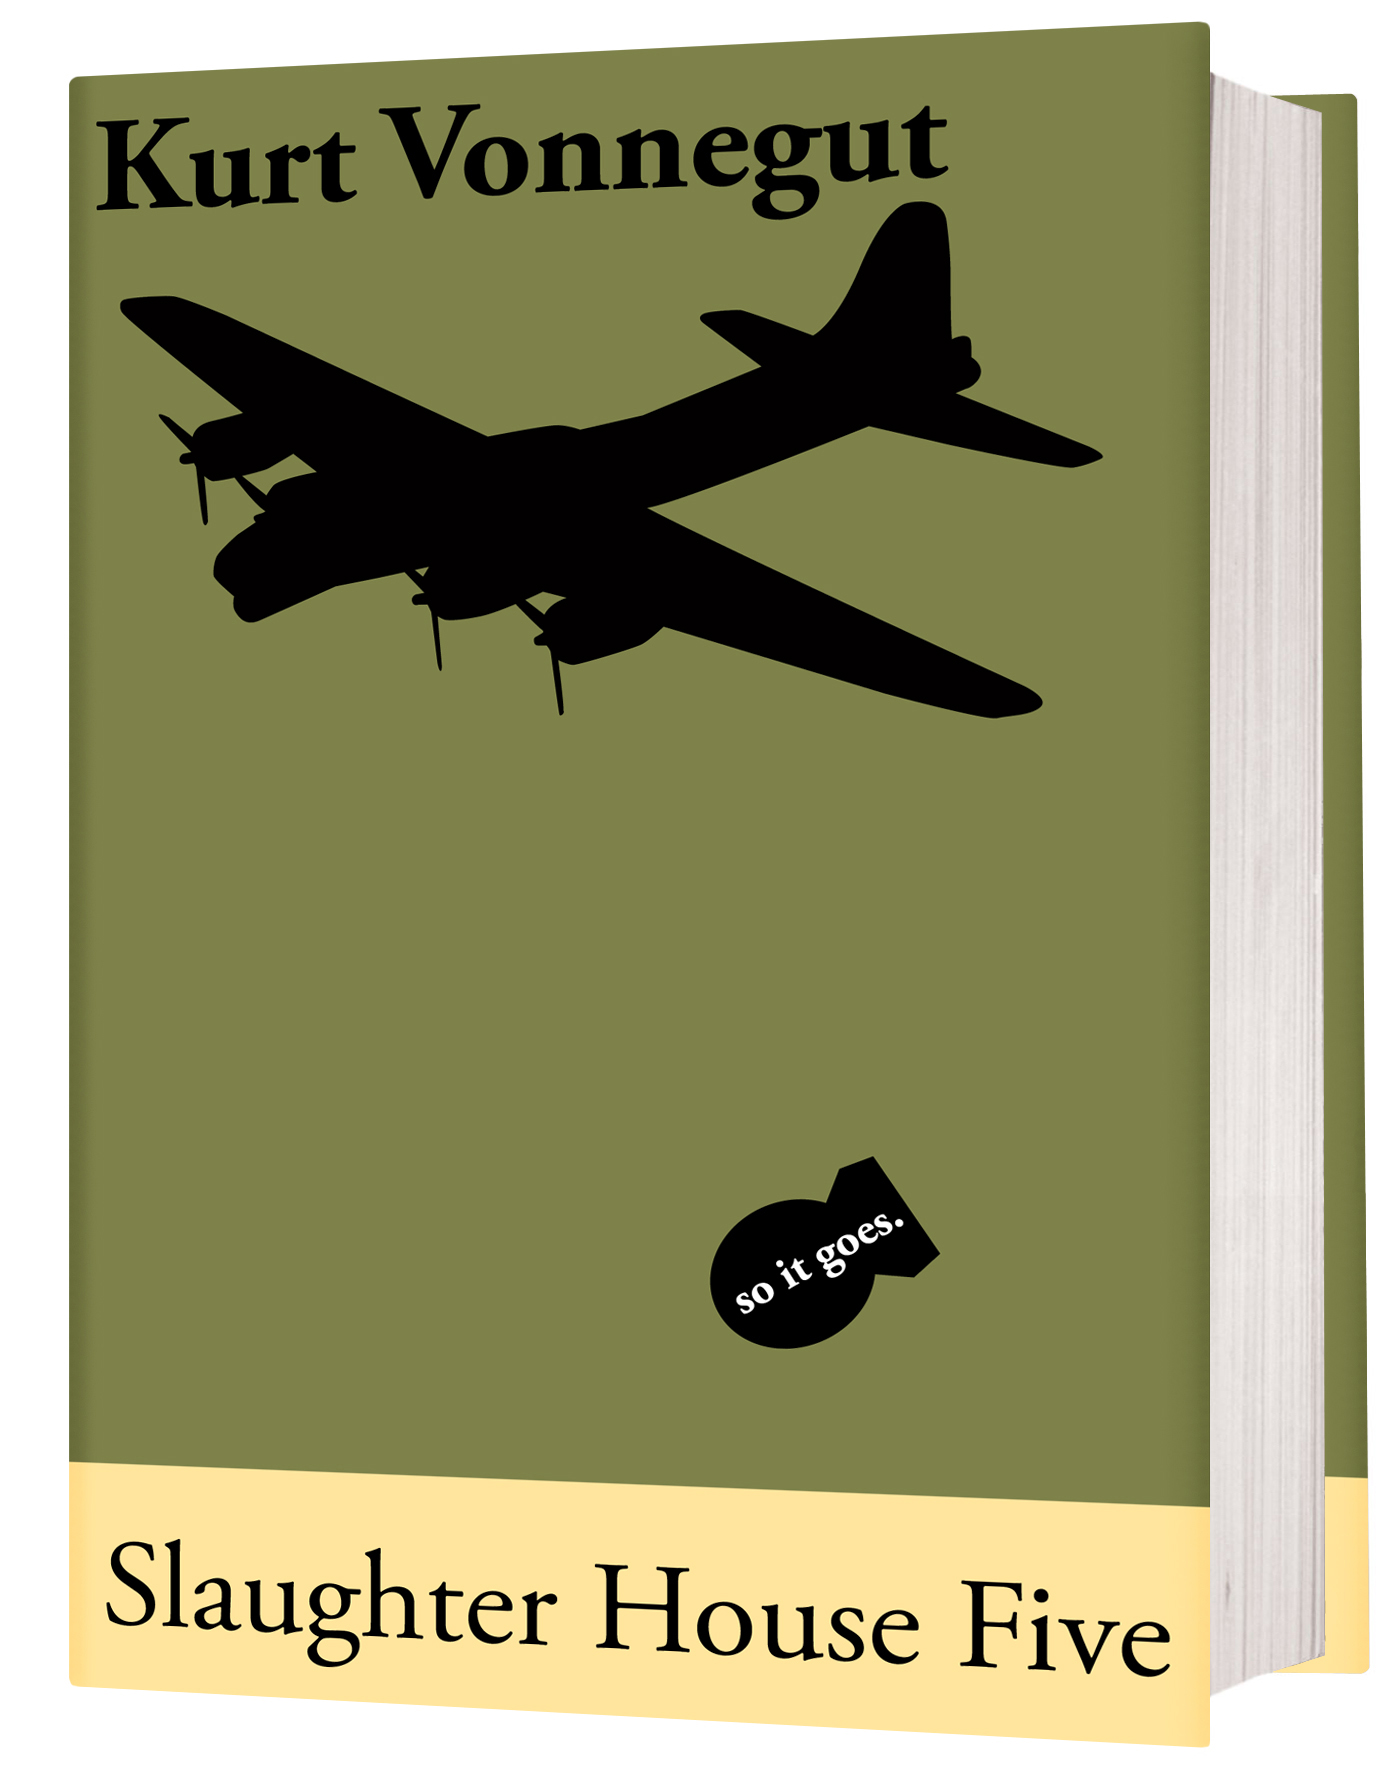 an analysis of slaughterhouse five a novel by kurt vonnegut Slaughterhouse five summary - slaughterhouse five by kurt vonnegut summary and analysis.